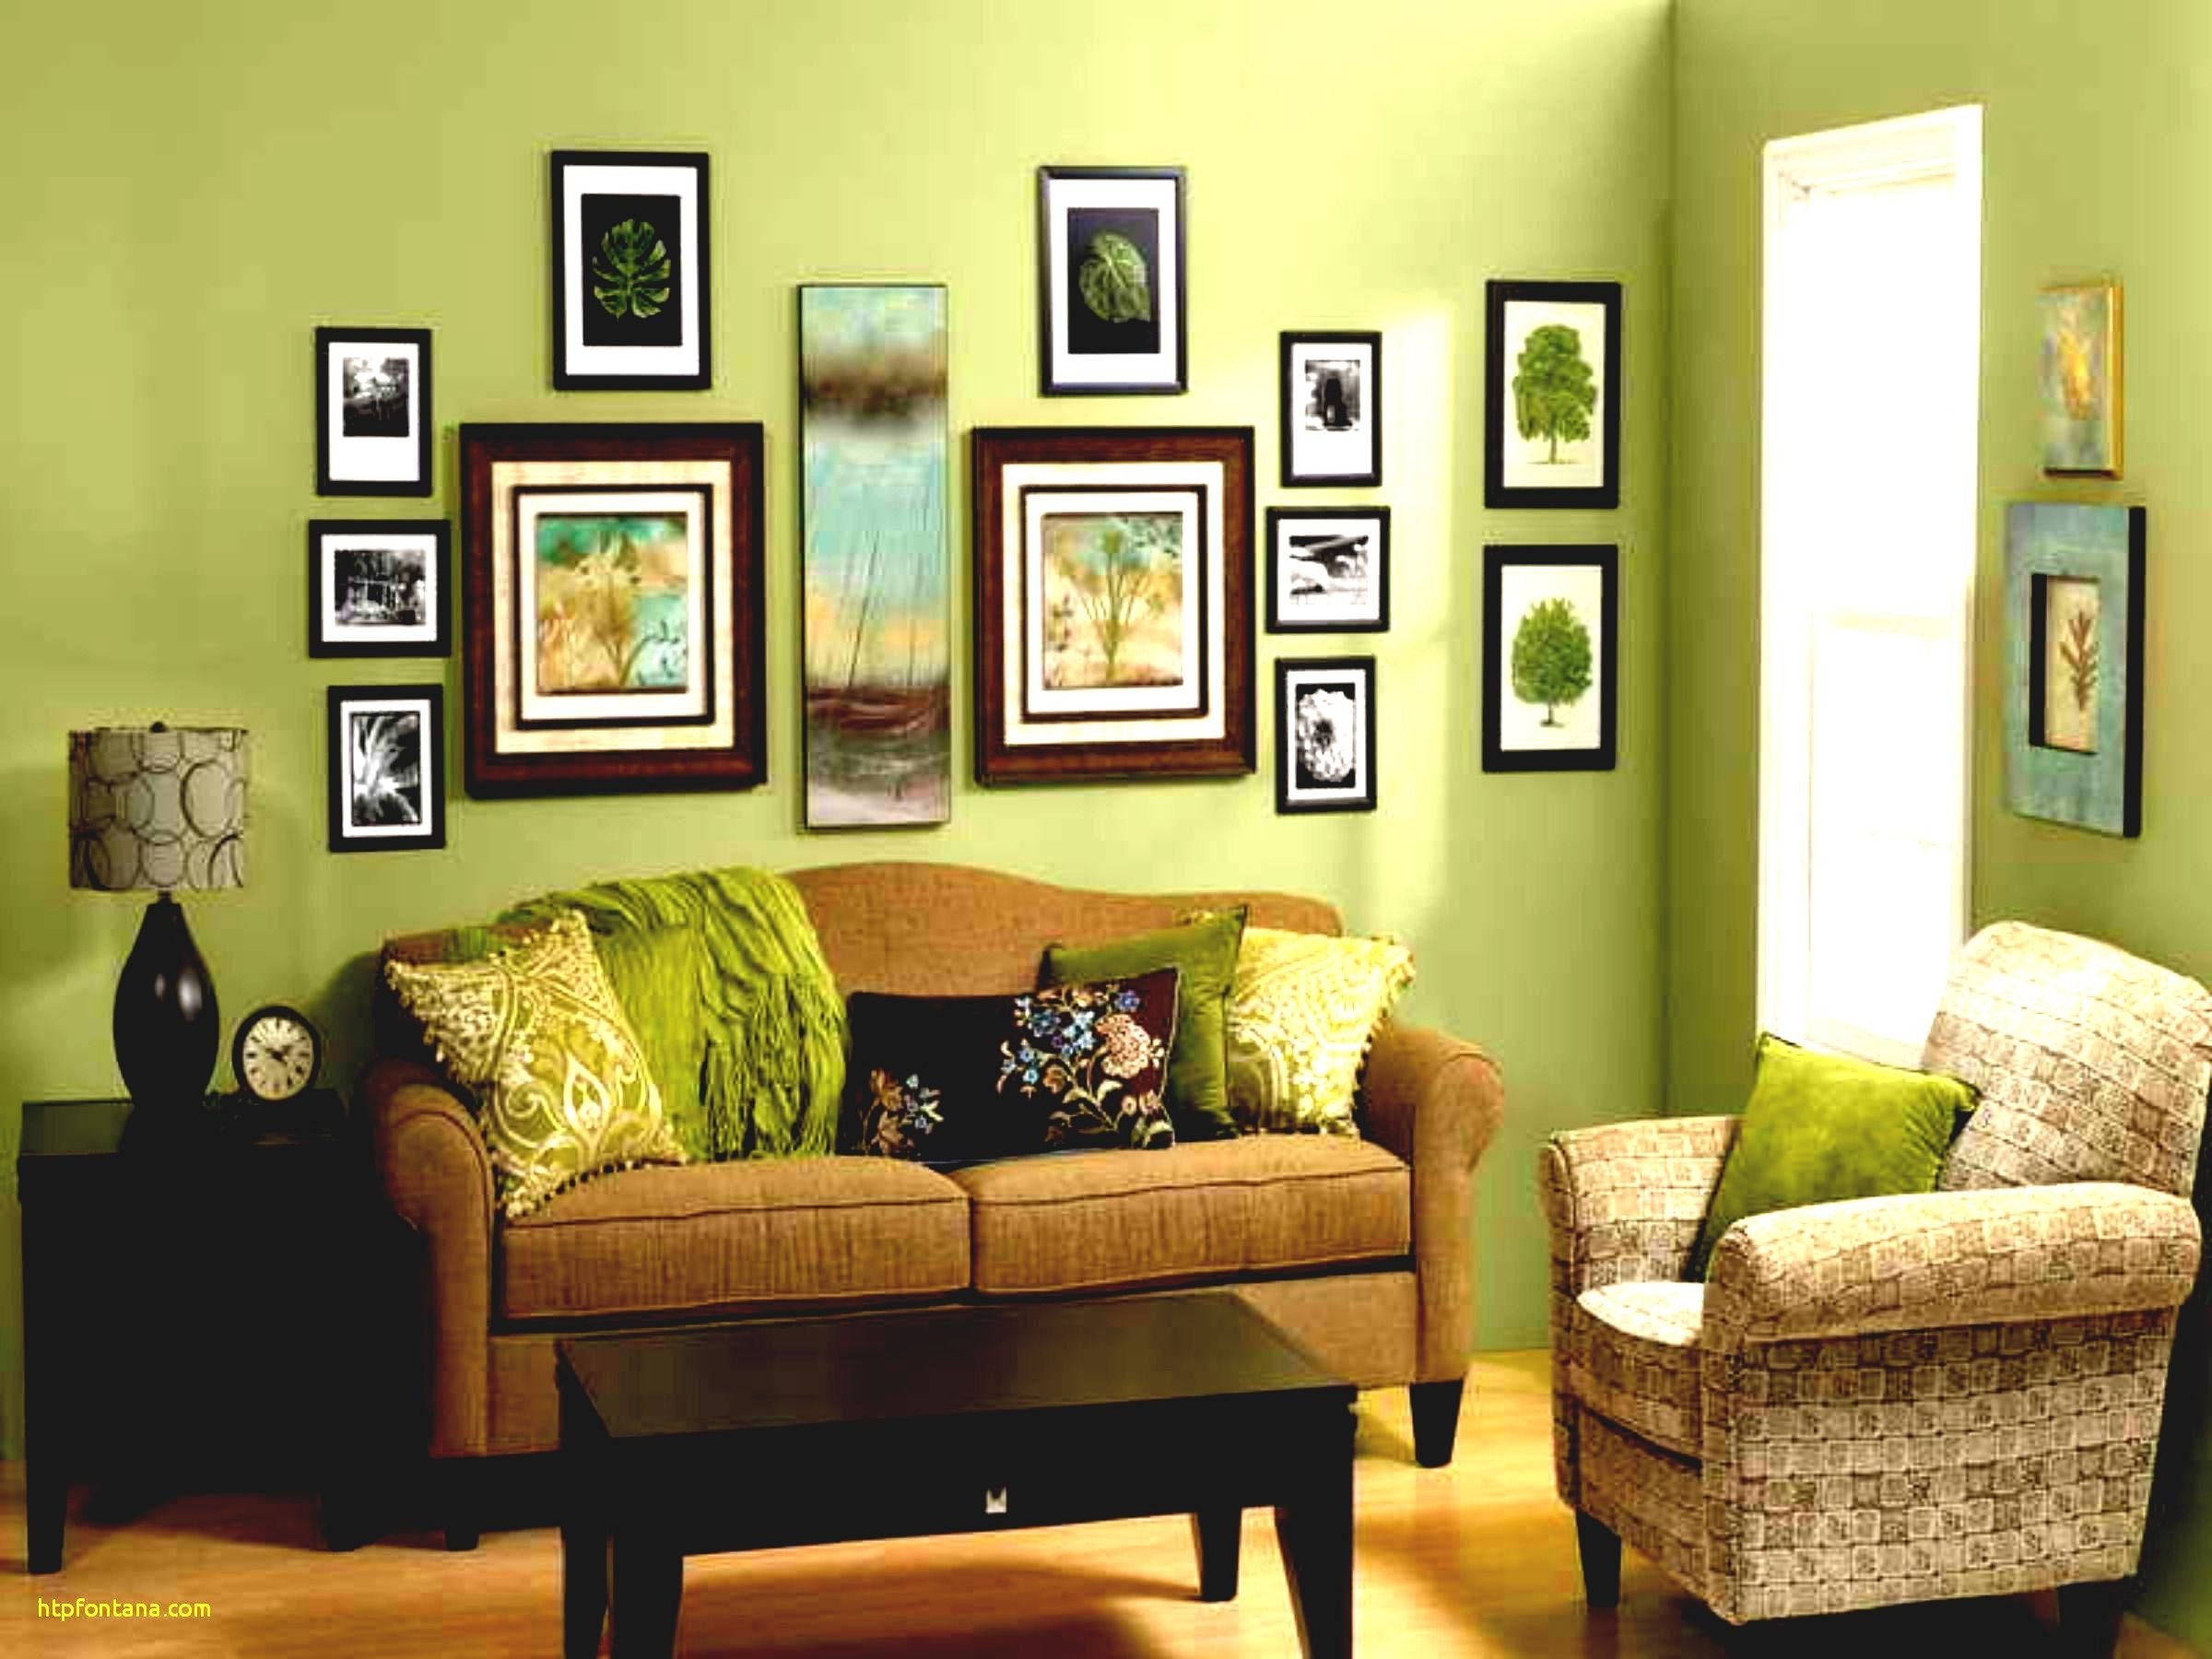 Girl Bedroom Decorating Ideas Elegant Decor Items for Living Room Awesome How to Decorate A House